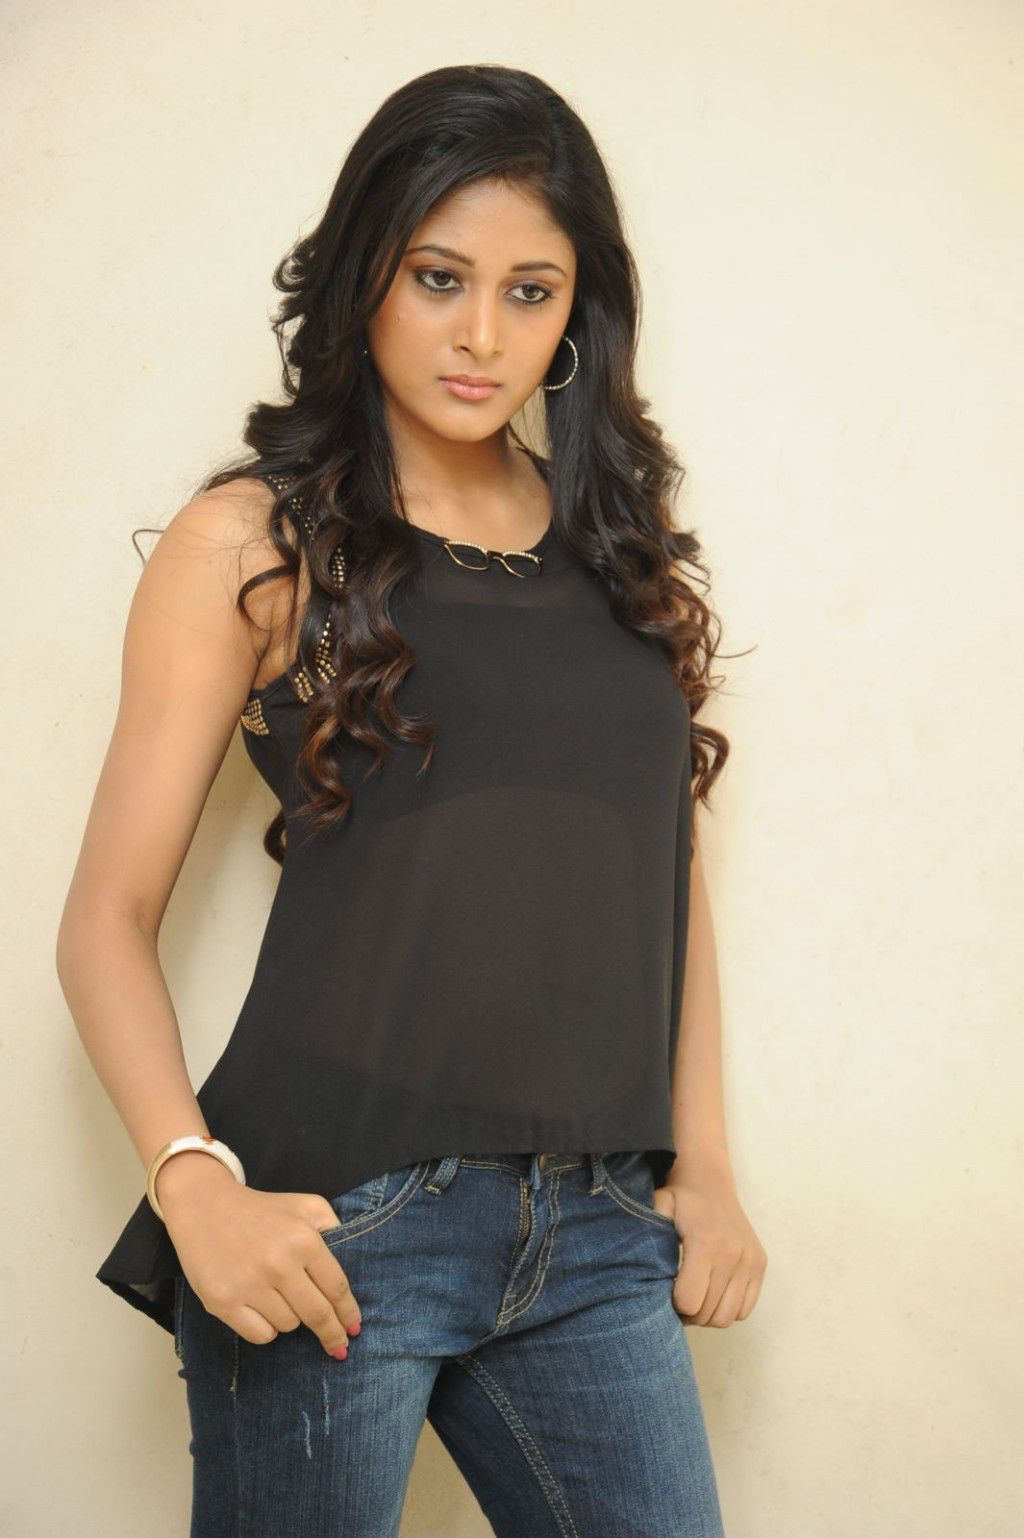 Telugu Hot Girl Sushma Raj In Black Top Blue Jeans At Movie First Look Launch